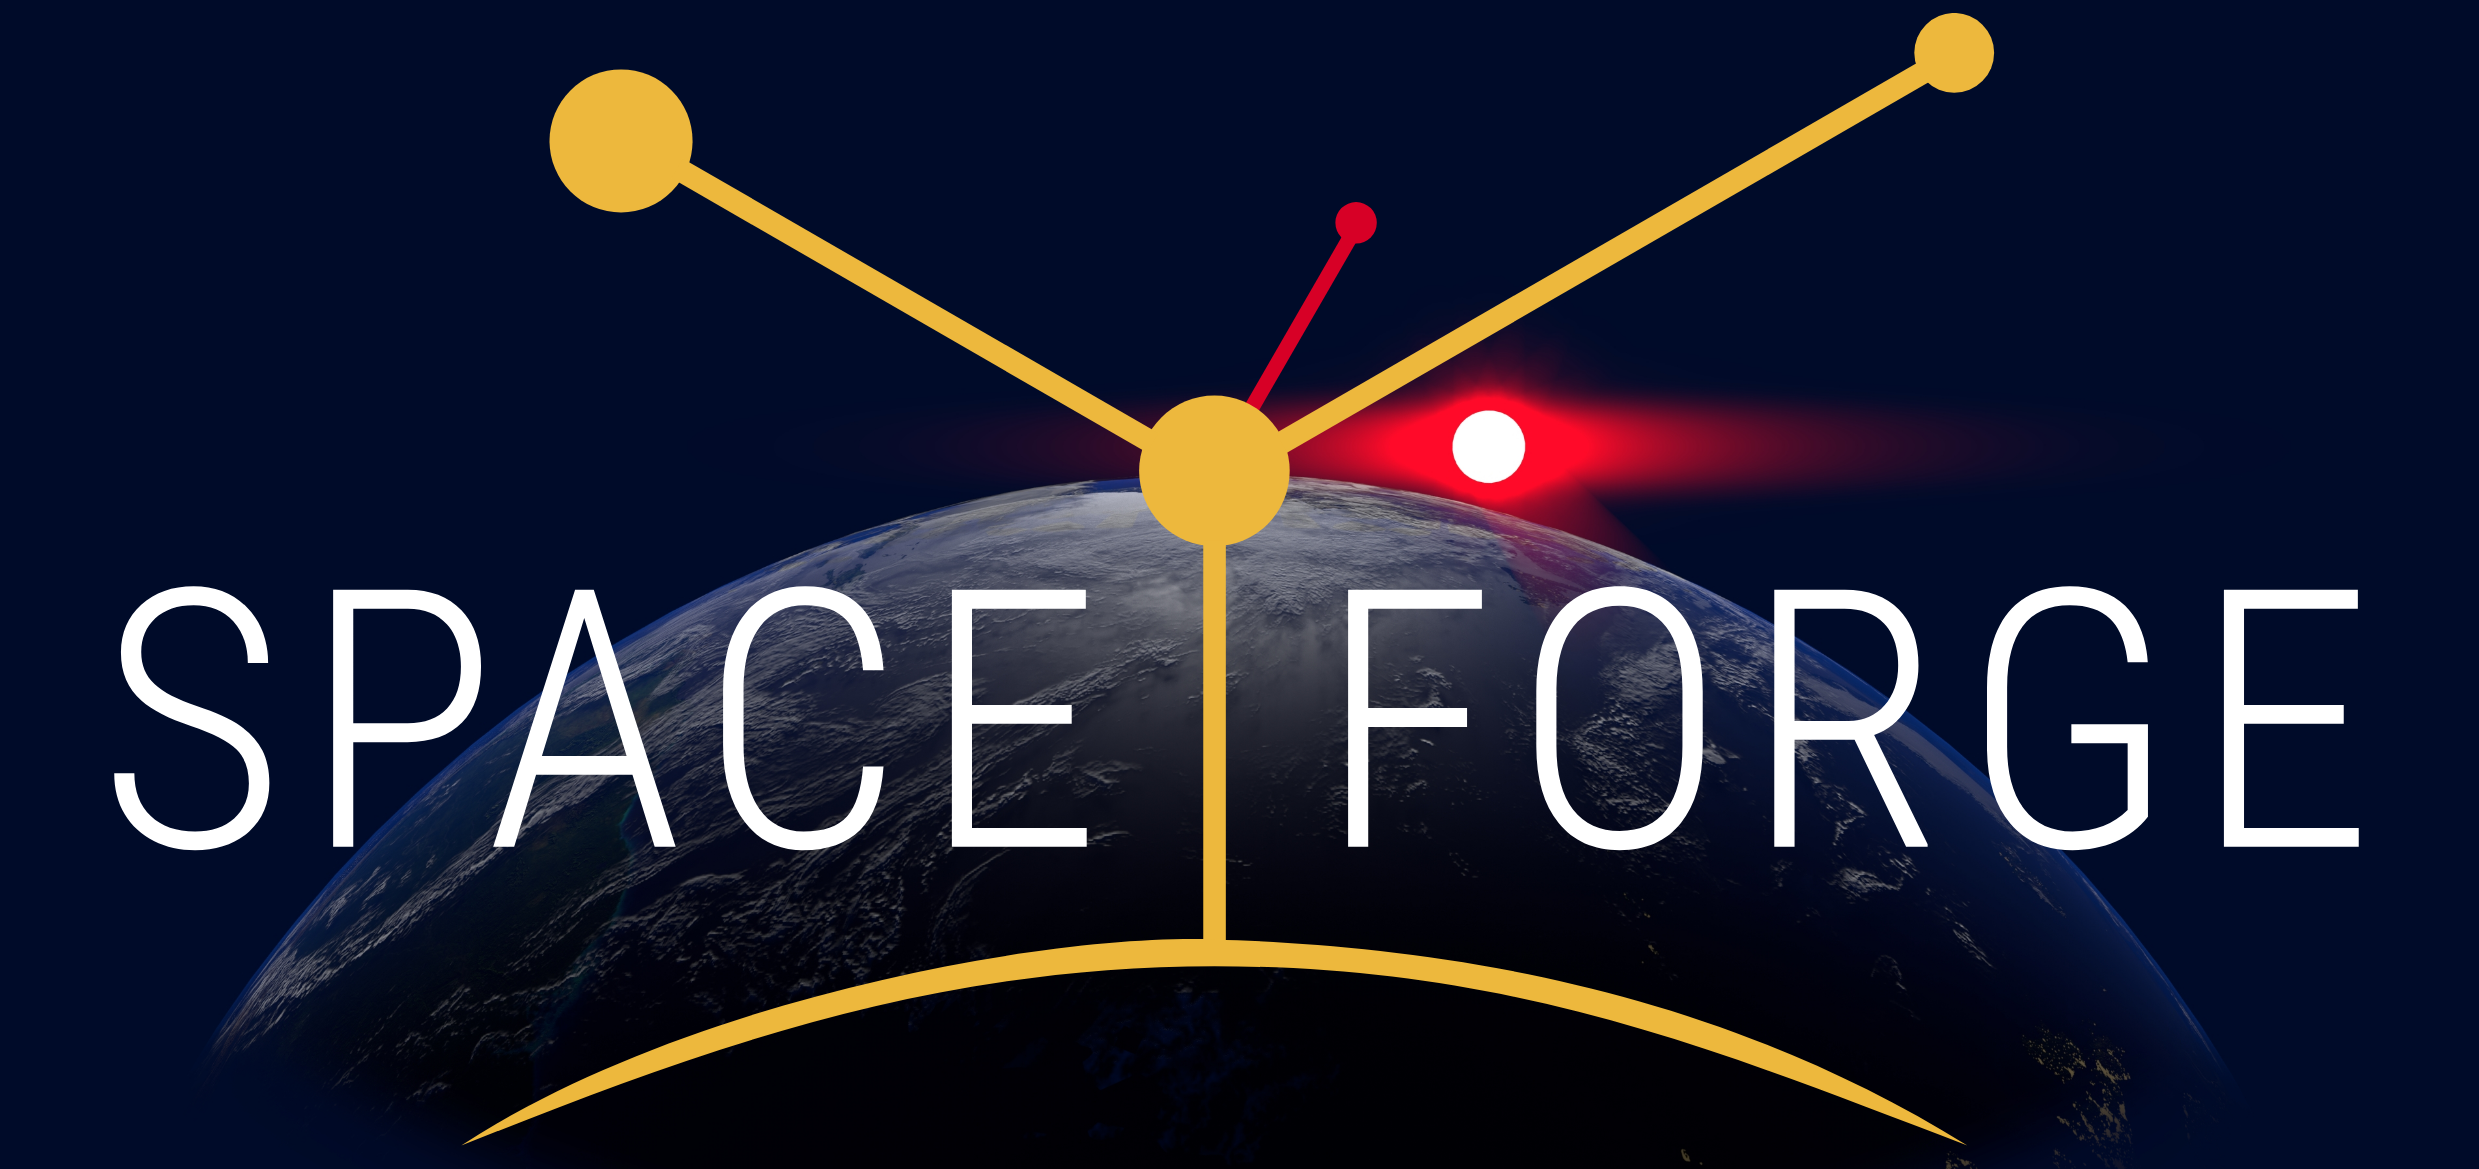 Space Forge